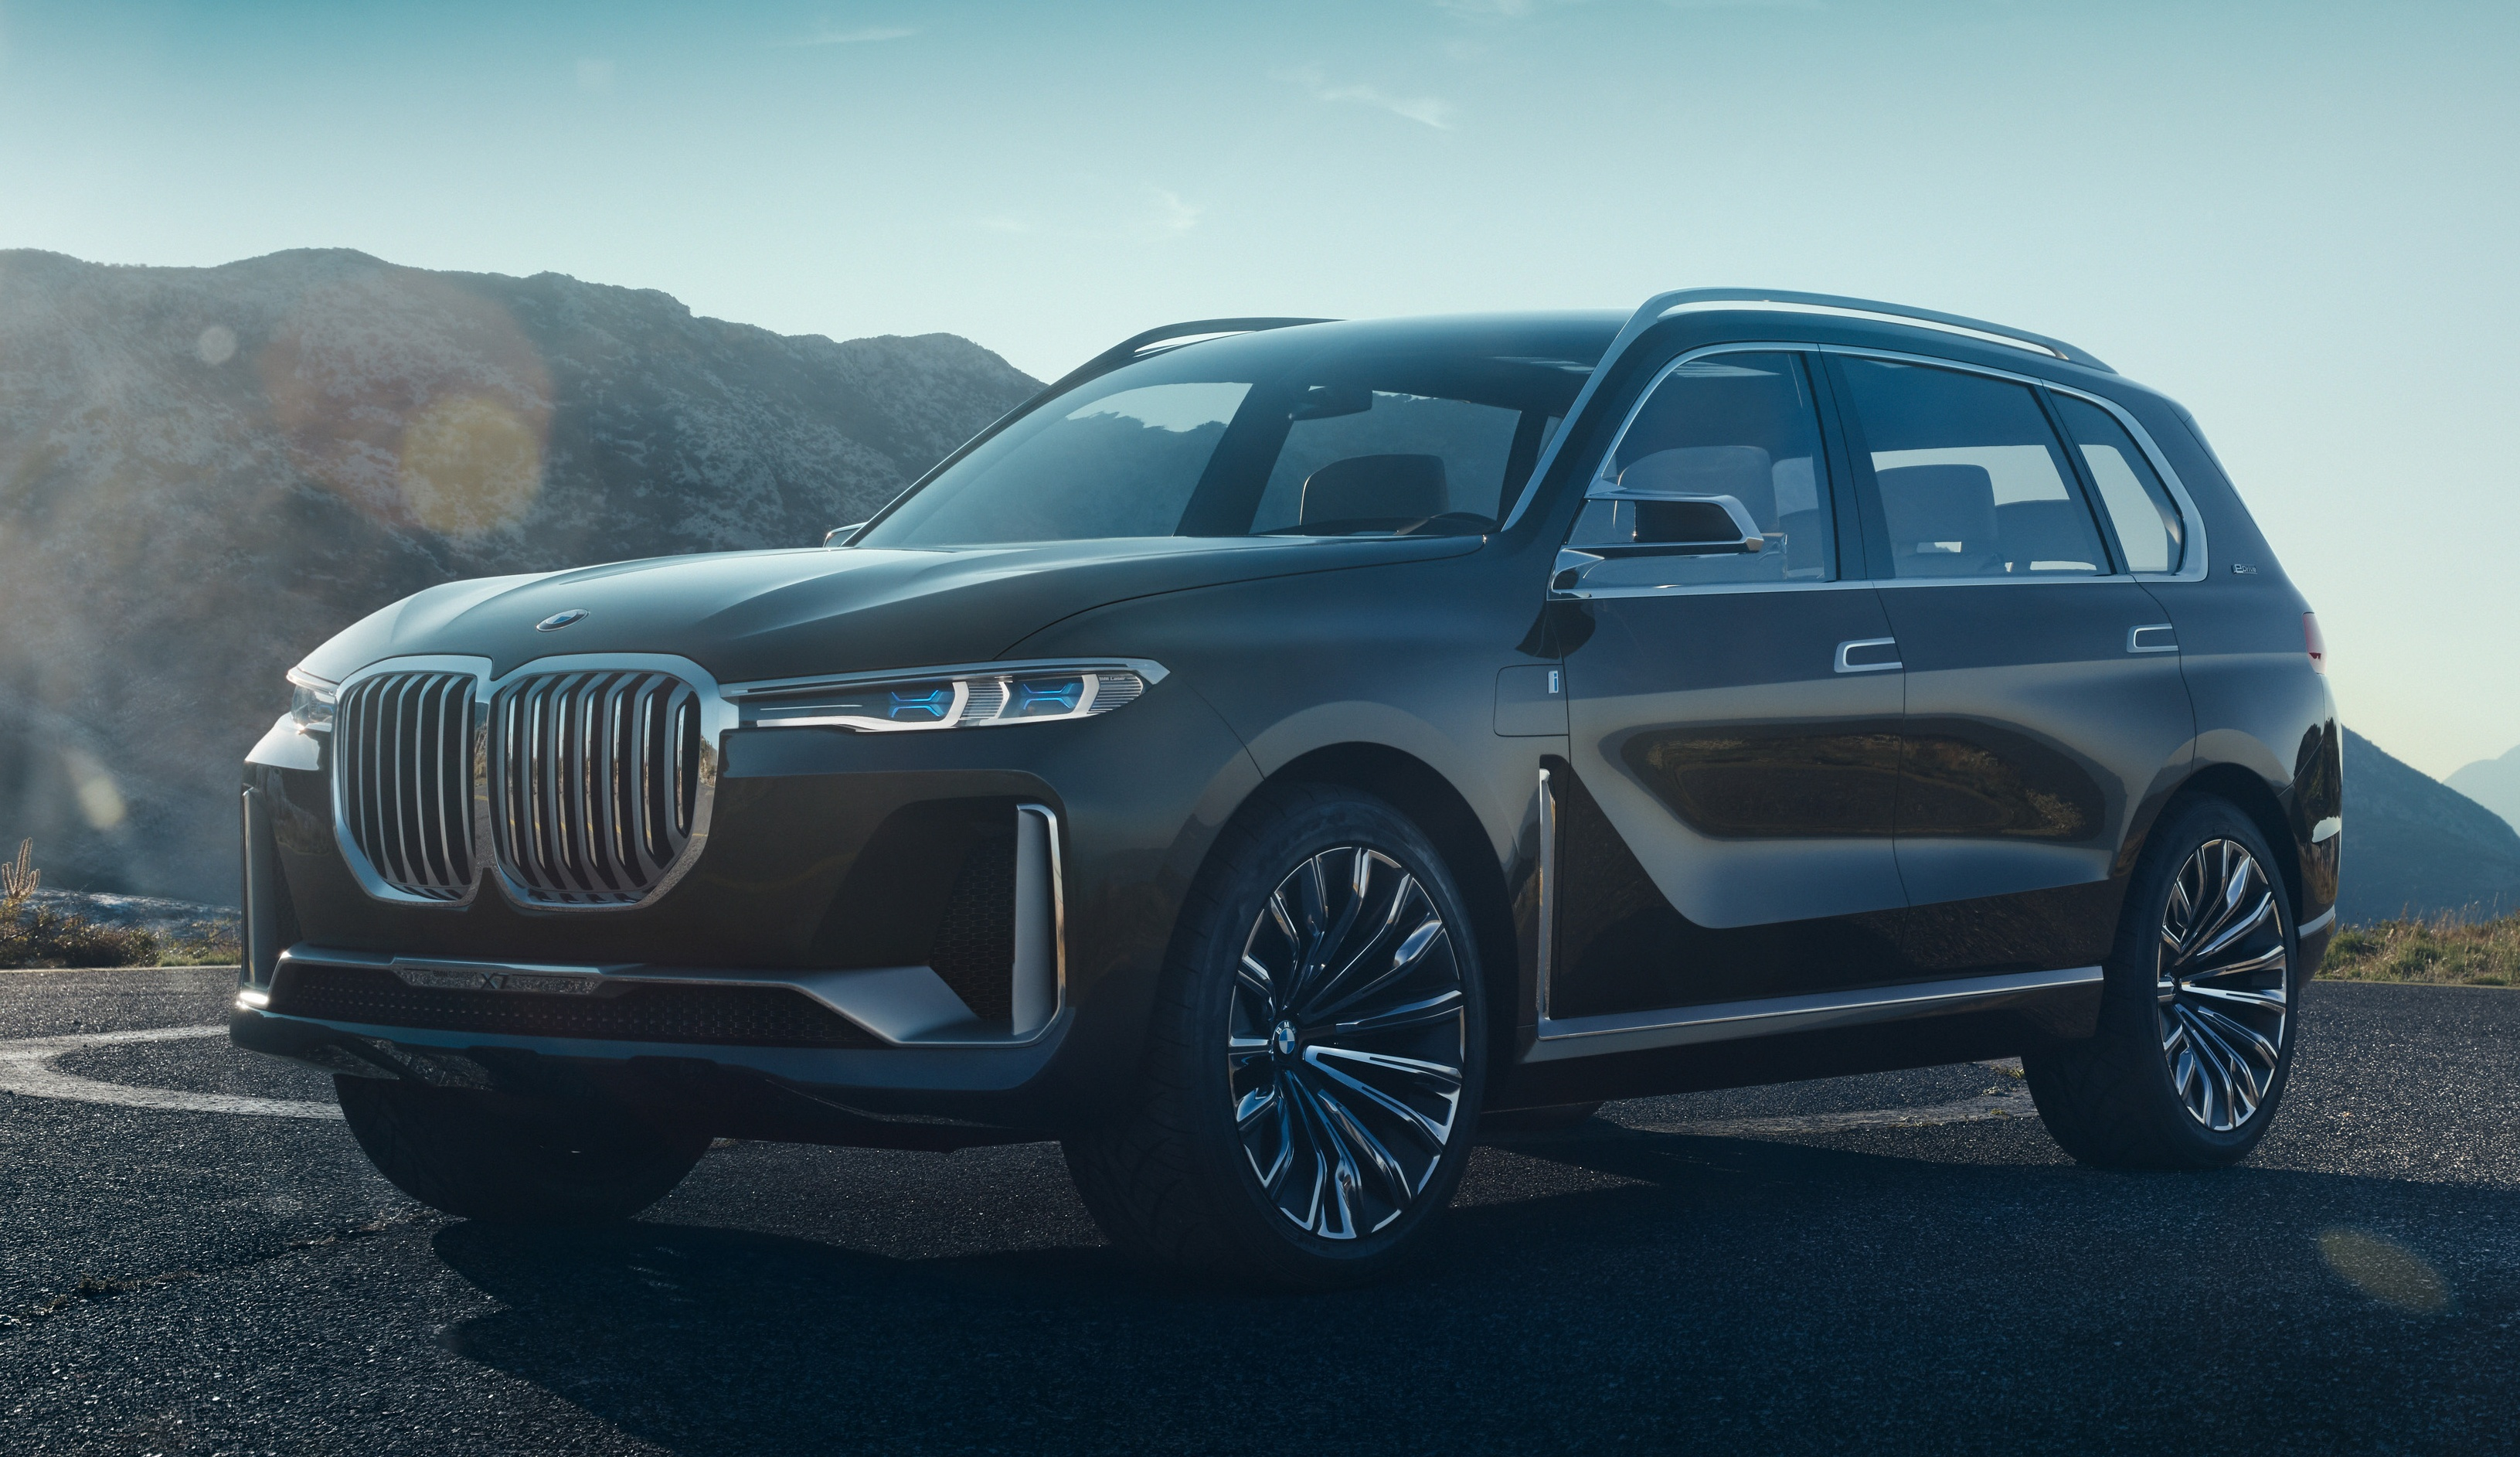 G07 BMW X7 XDrive50i Features And Options List Leaked 456 Hp 44L Bi Turbo V8 5 Zone Auto Climate Control Breaking News